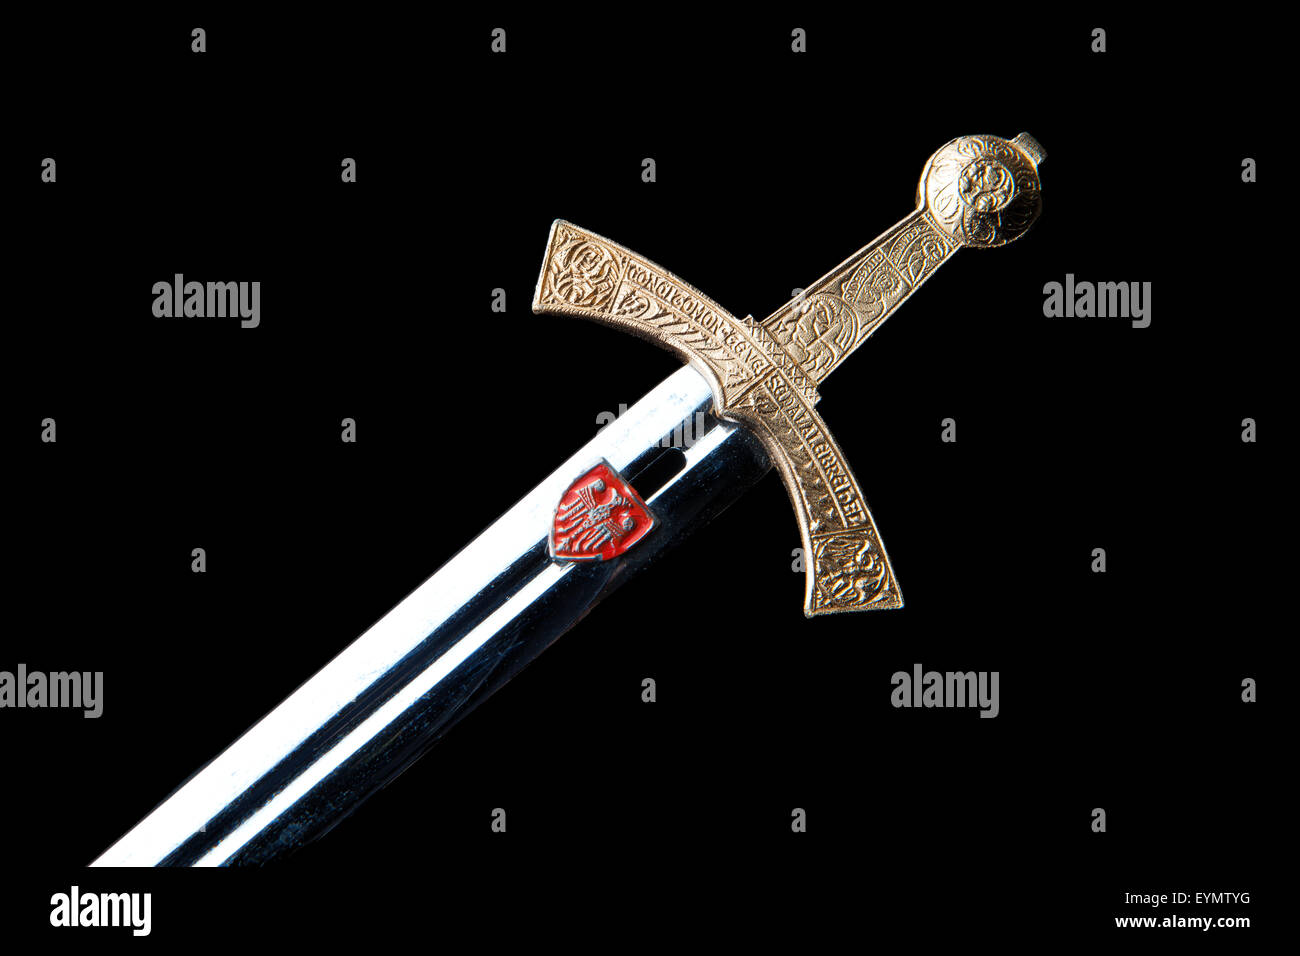 Szczerbiec, the Polish coronation sword, souvenir - Stock Image